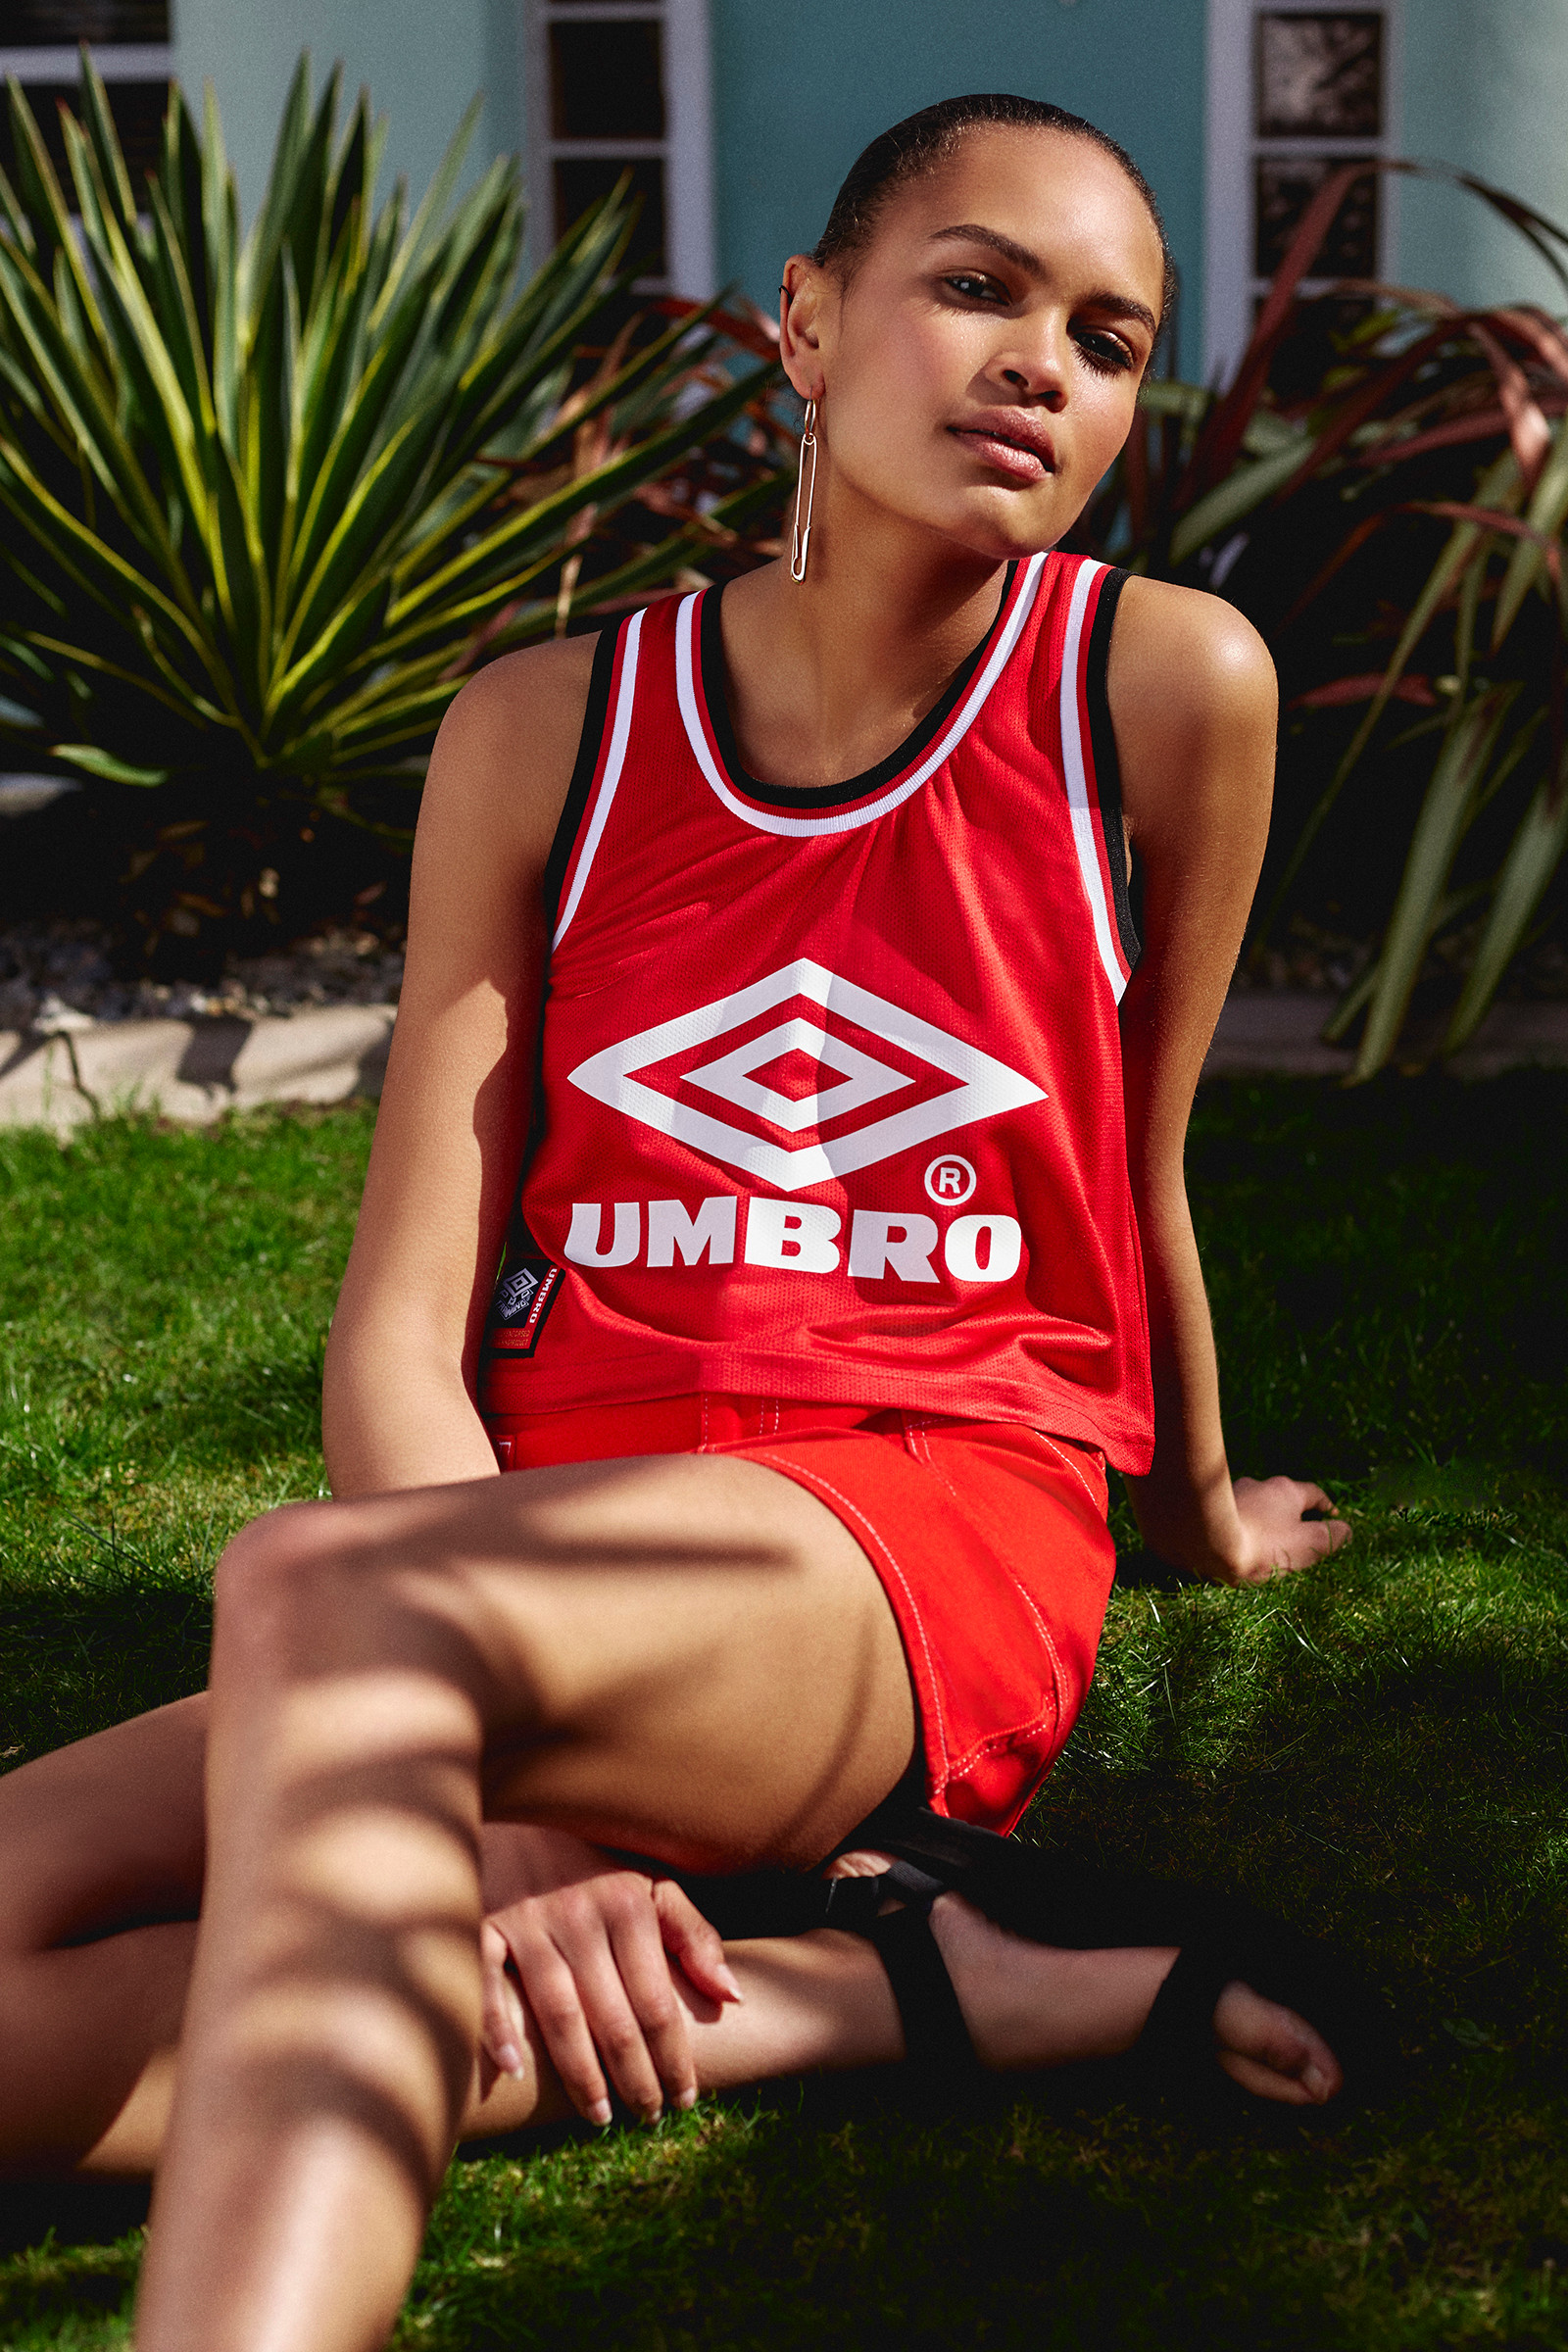 umbro urban outfitters